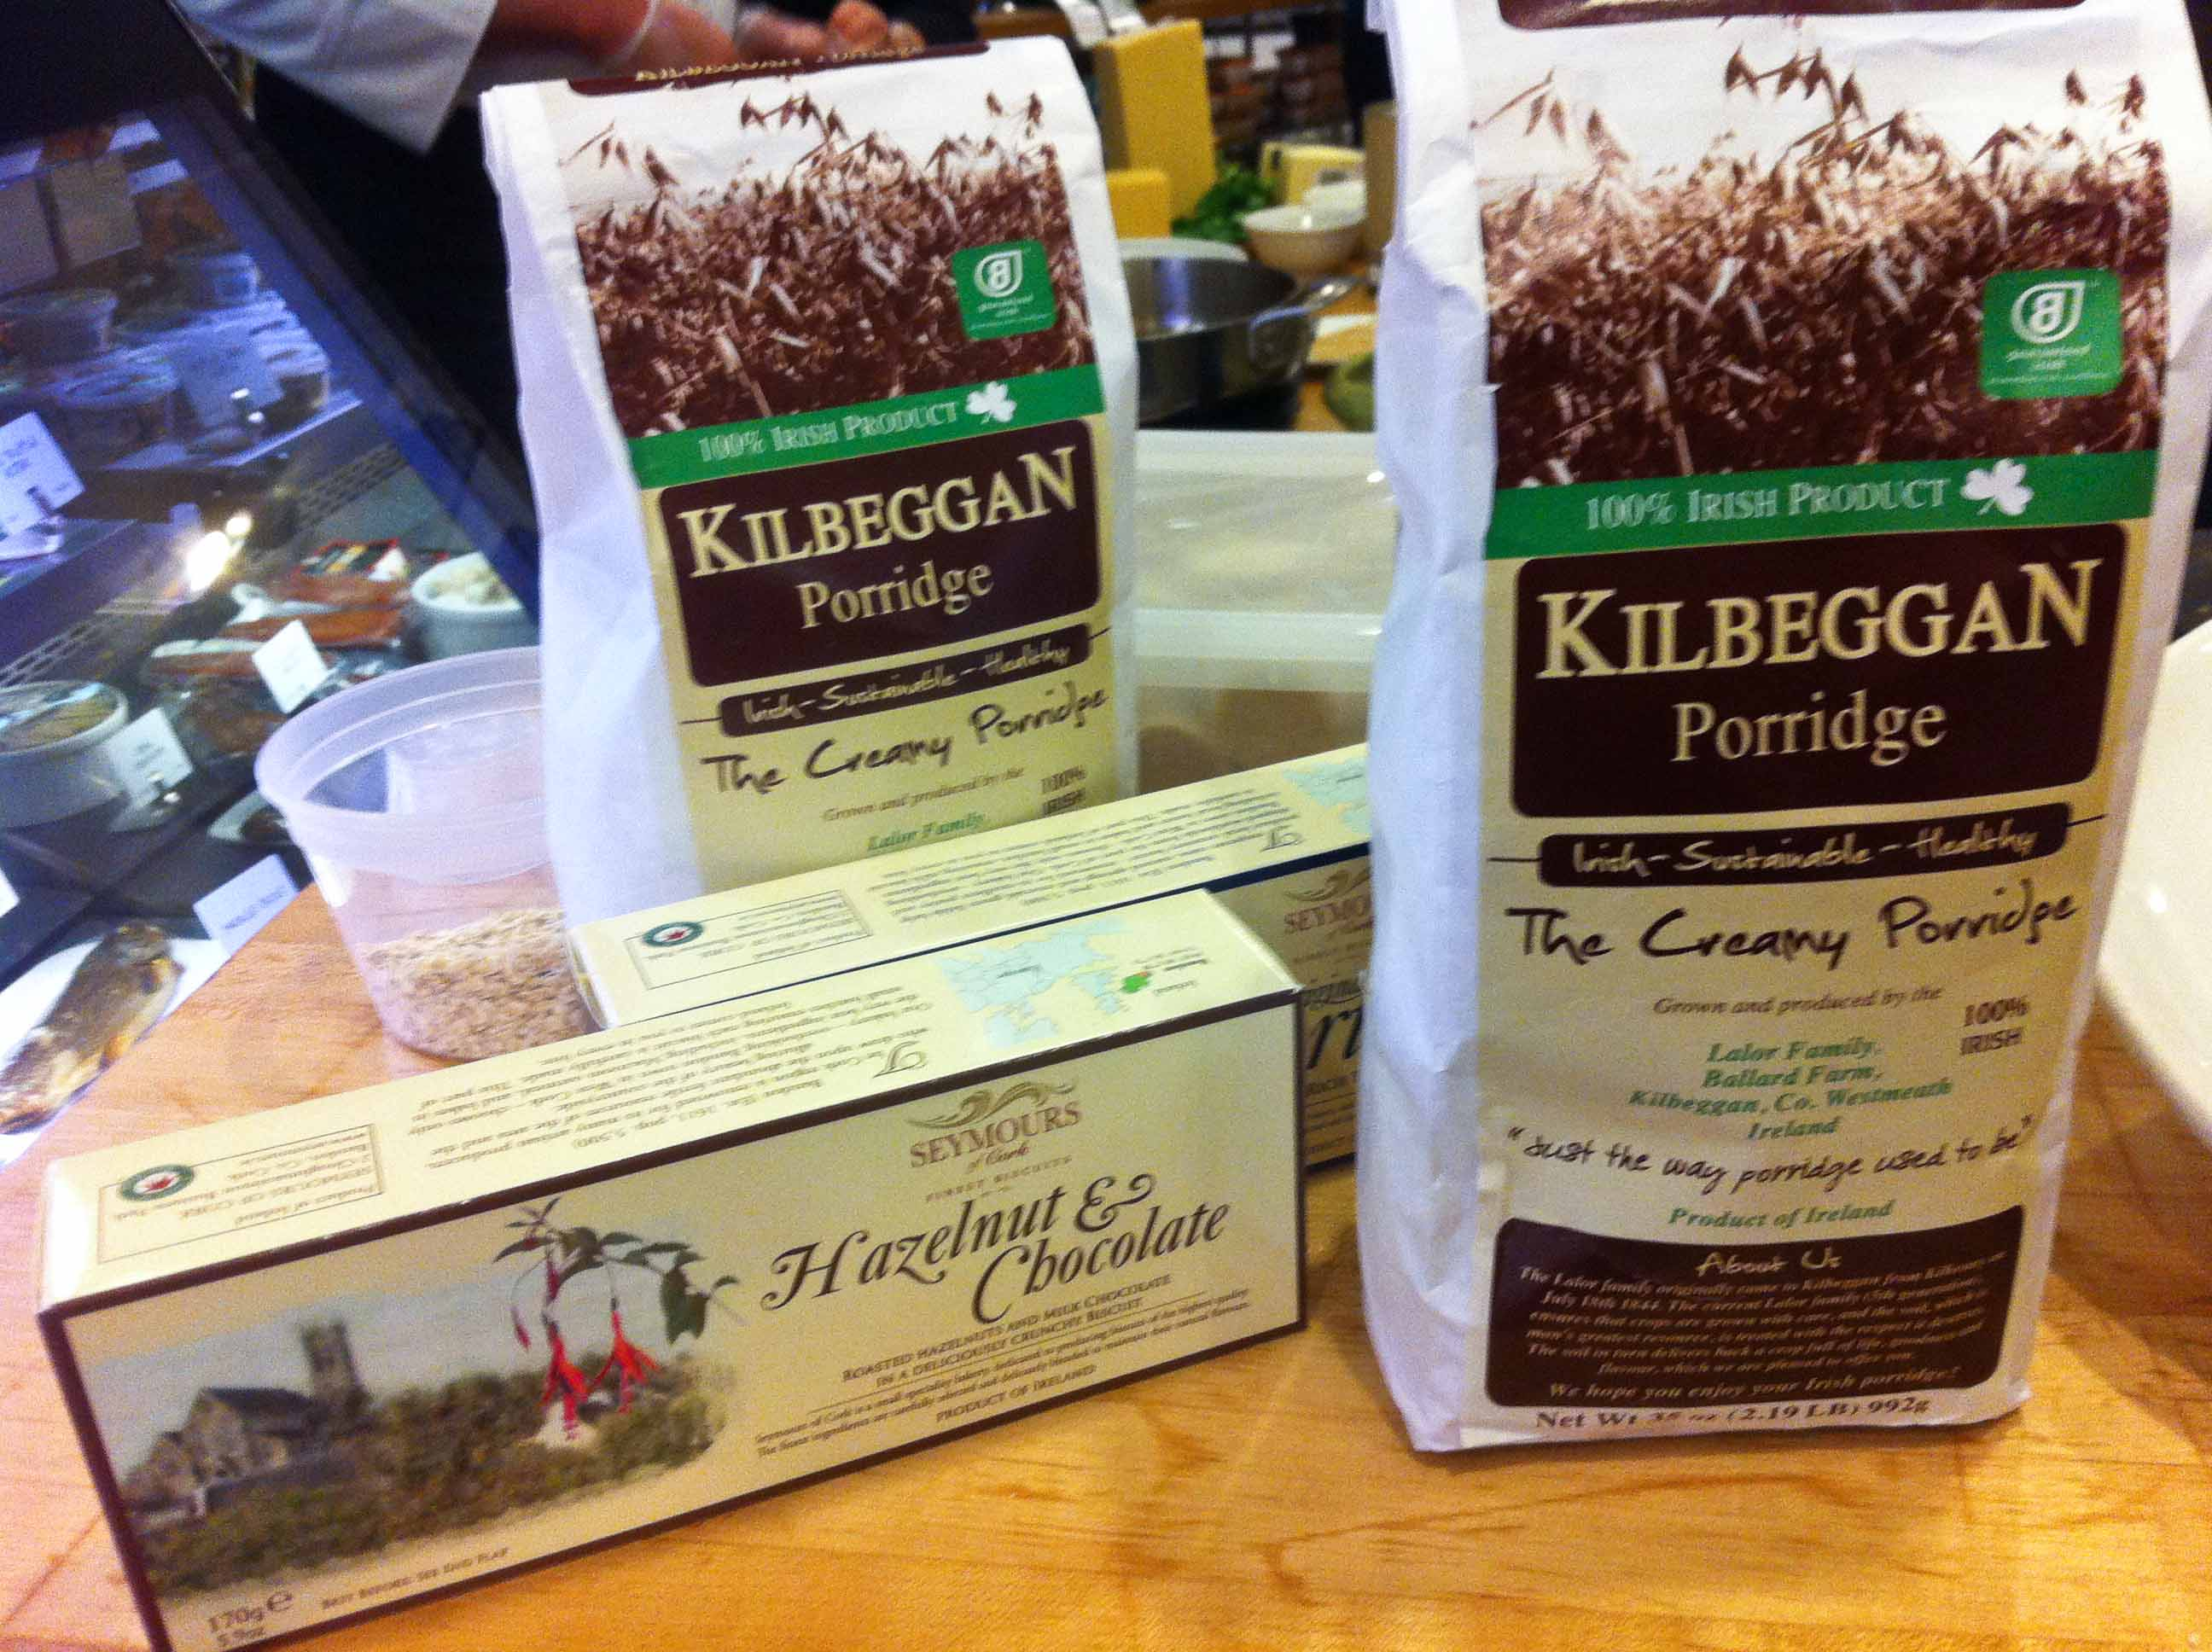 Kilbeggan Irish Porridge & Seymours Biscuits